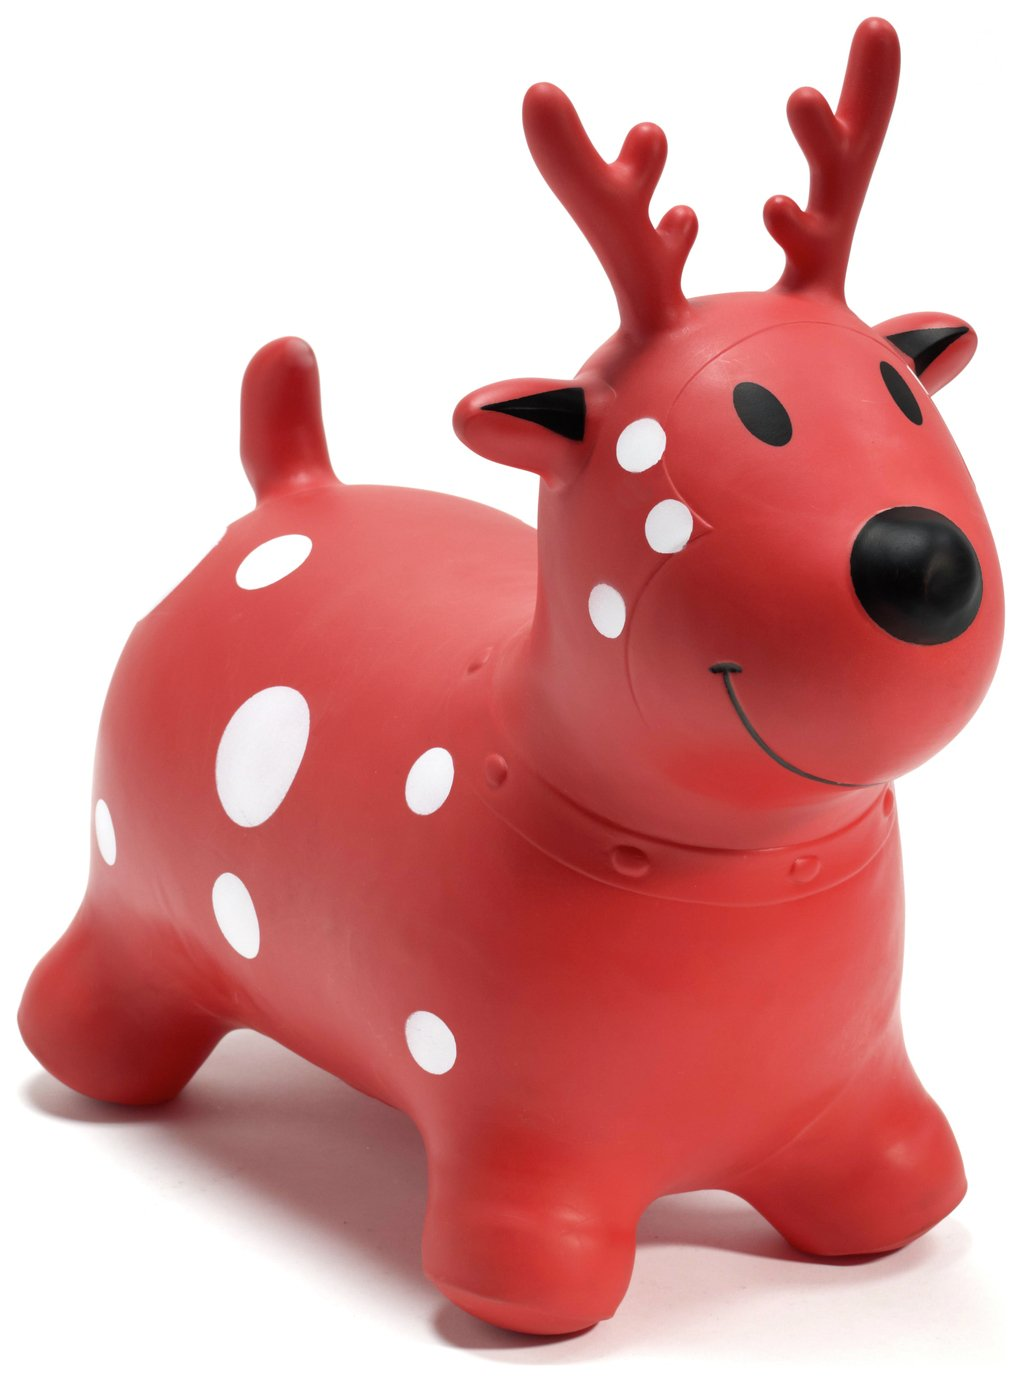 Image of HappyHopperz Inflatable Bouncer Deer - Red.